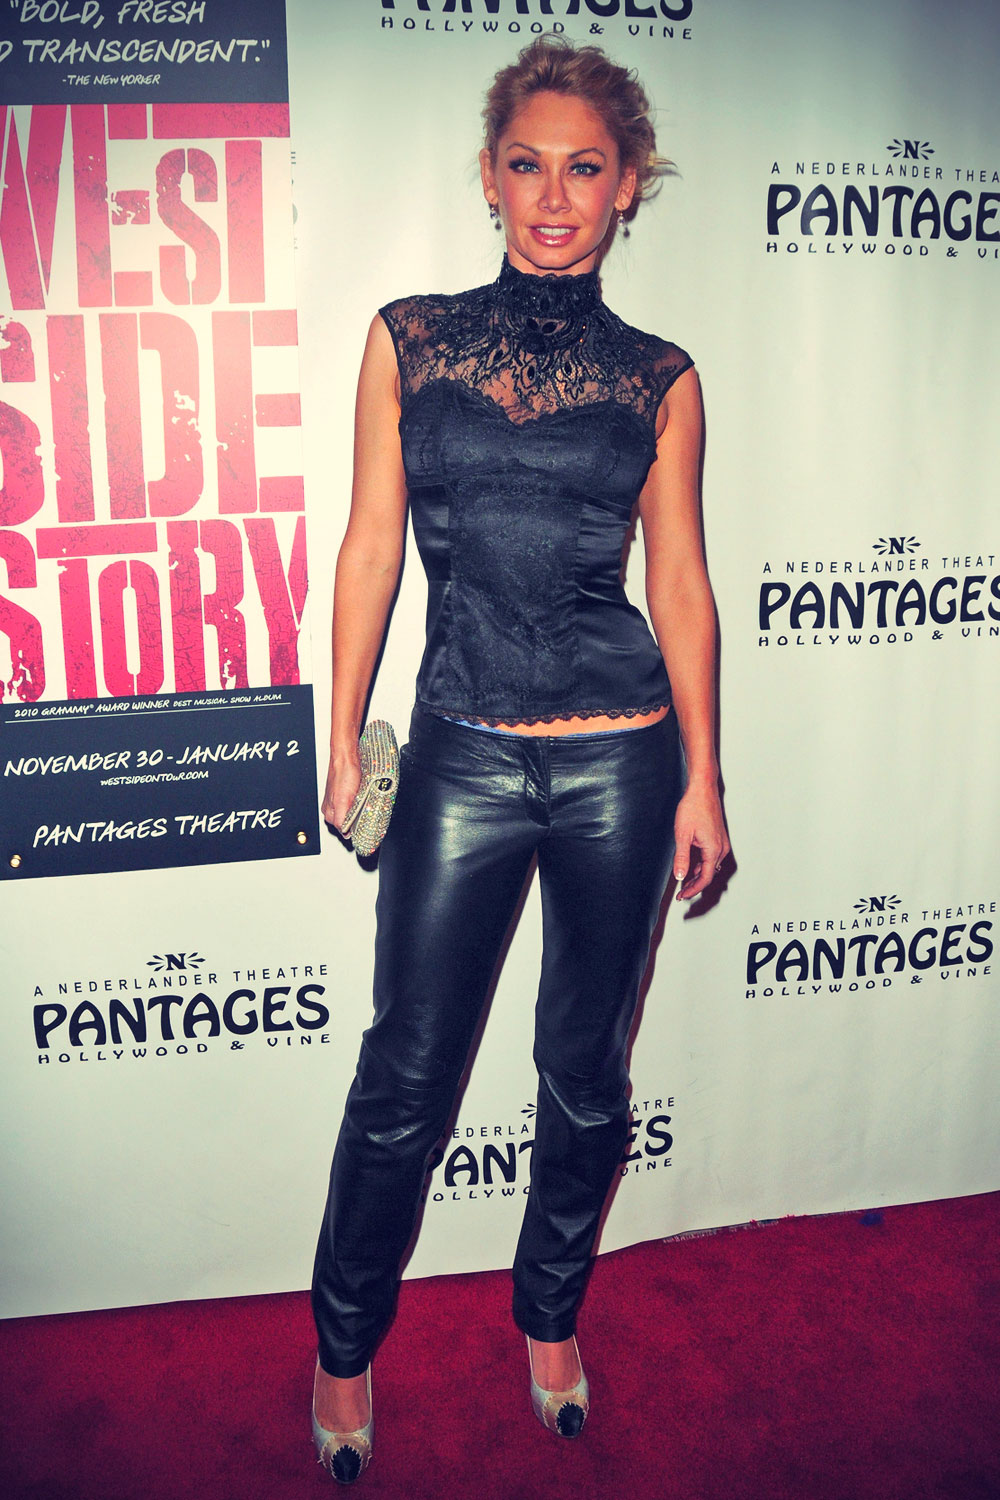 Kym Johnson Opening night of West Side Story